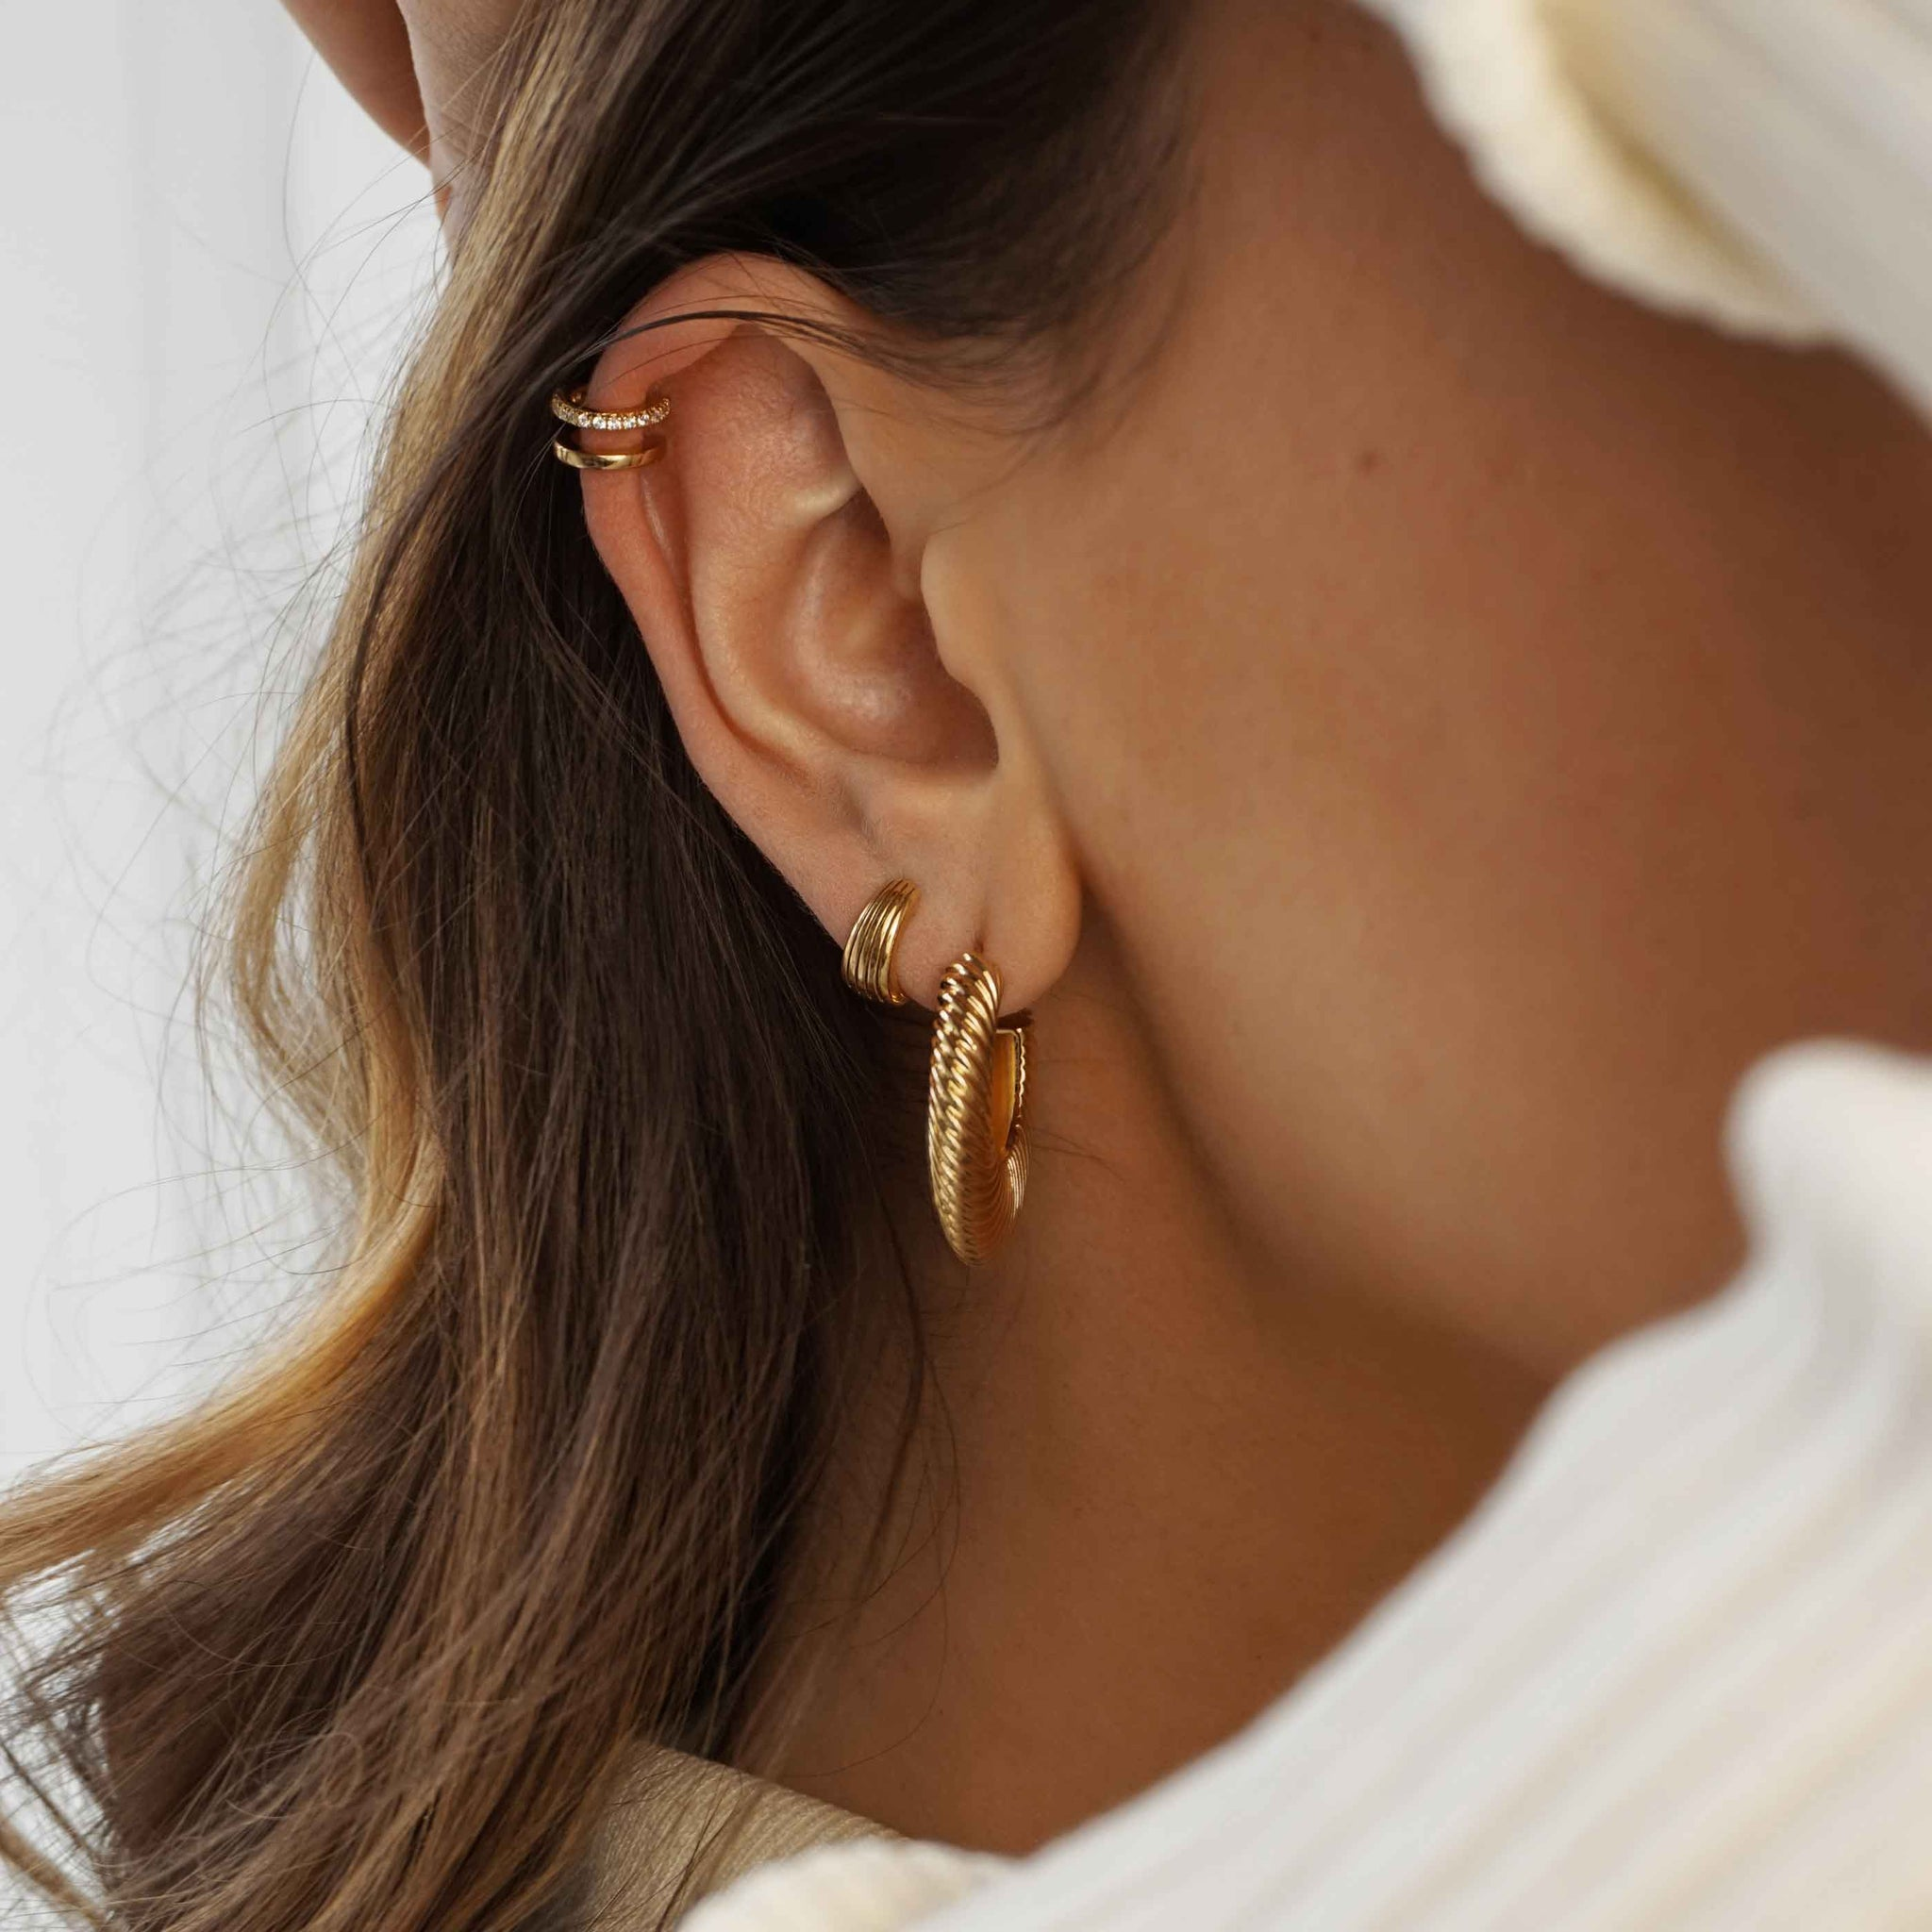 Mini Illusion Crystal Ear Cuff in Gold